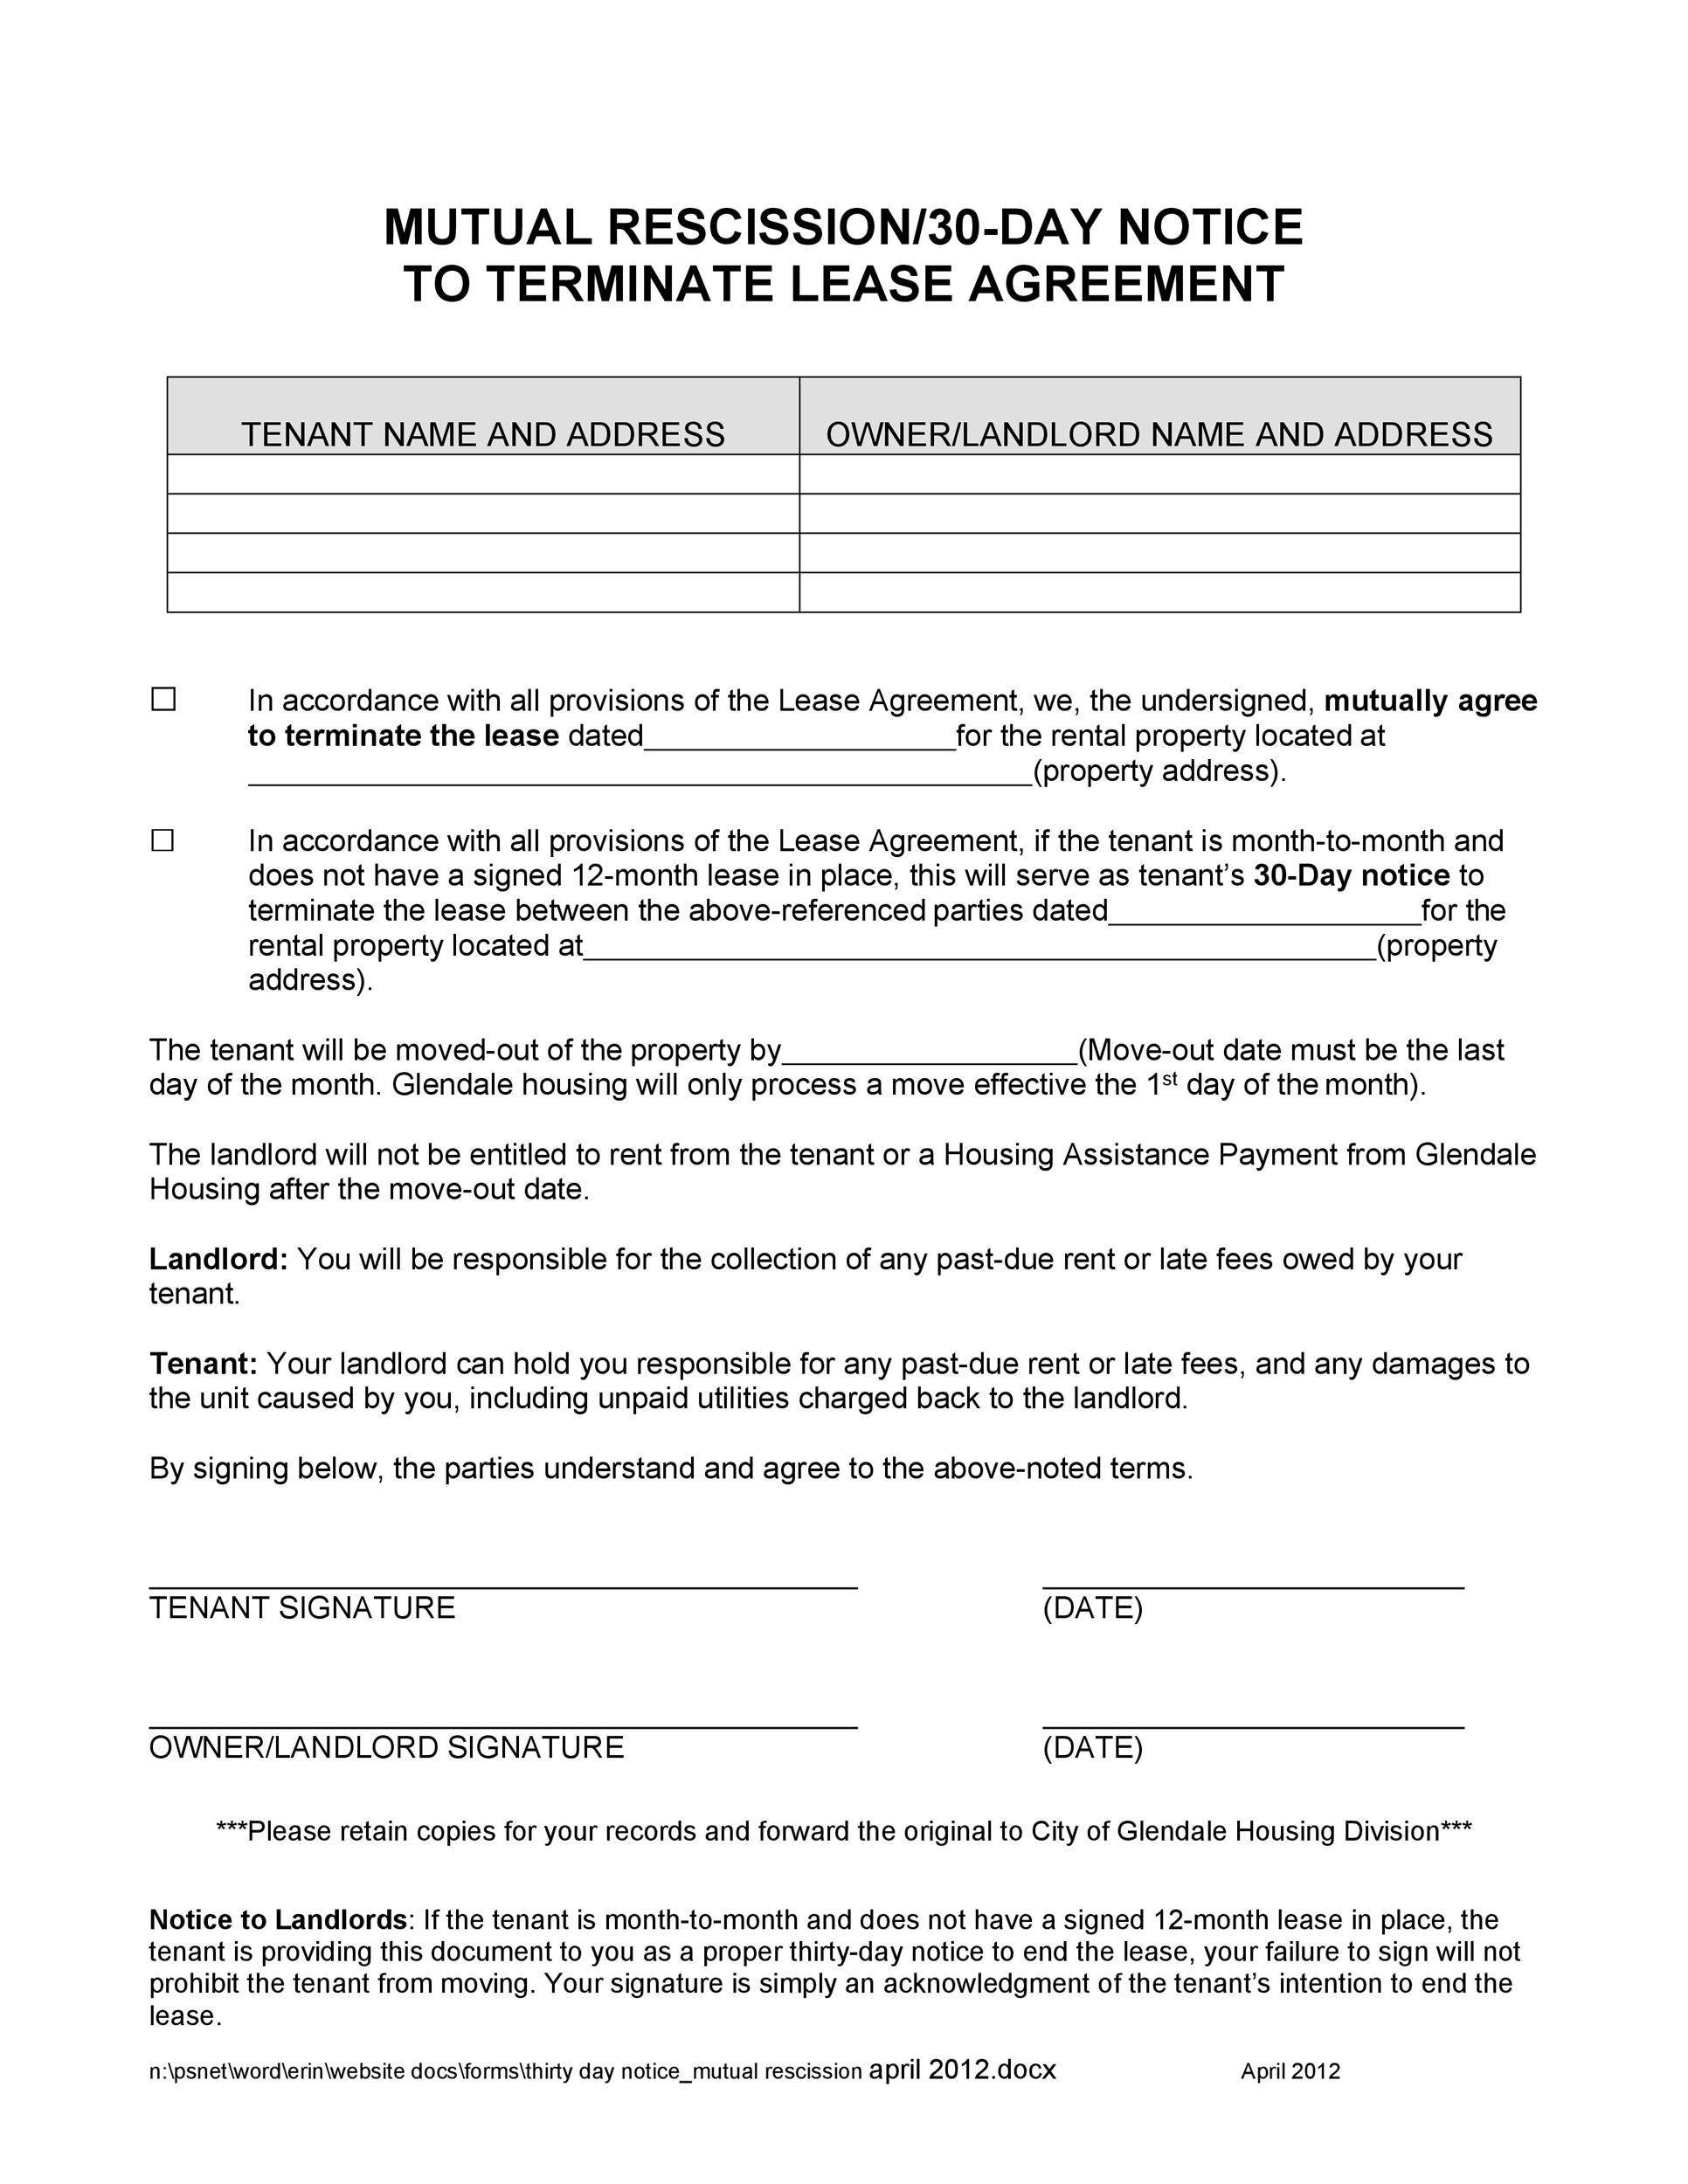 45 Useful Rescission Agreements (Free Templates)